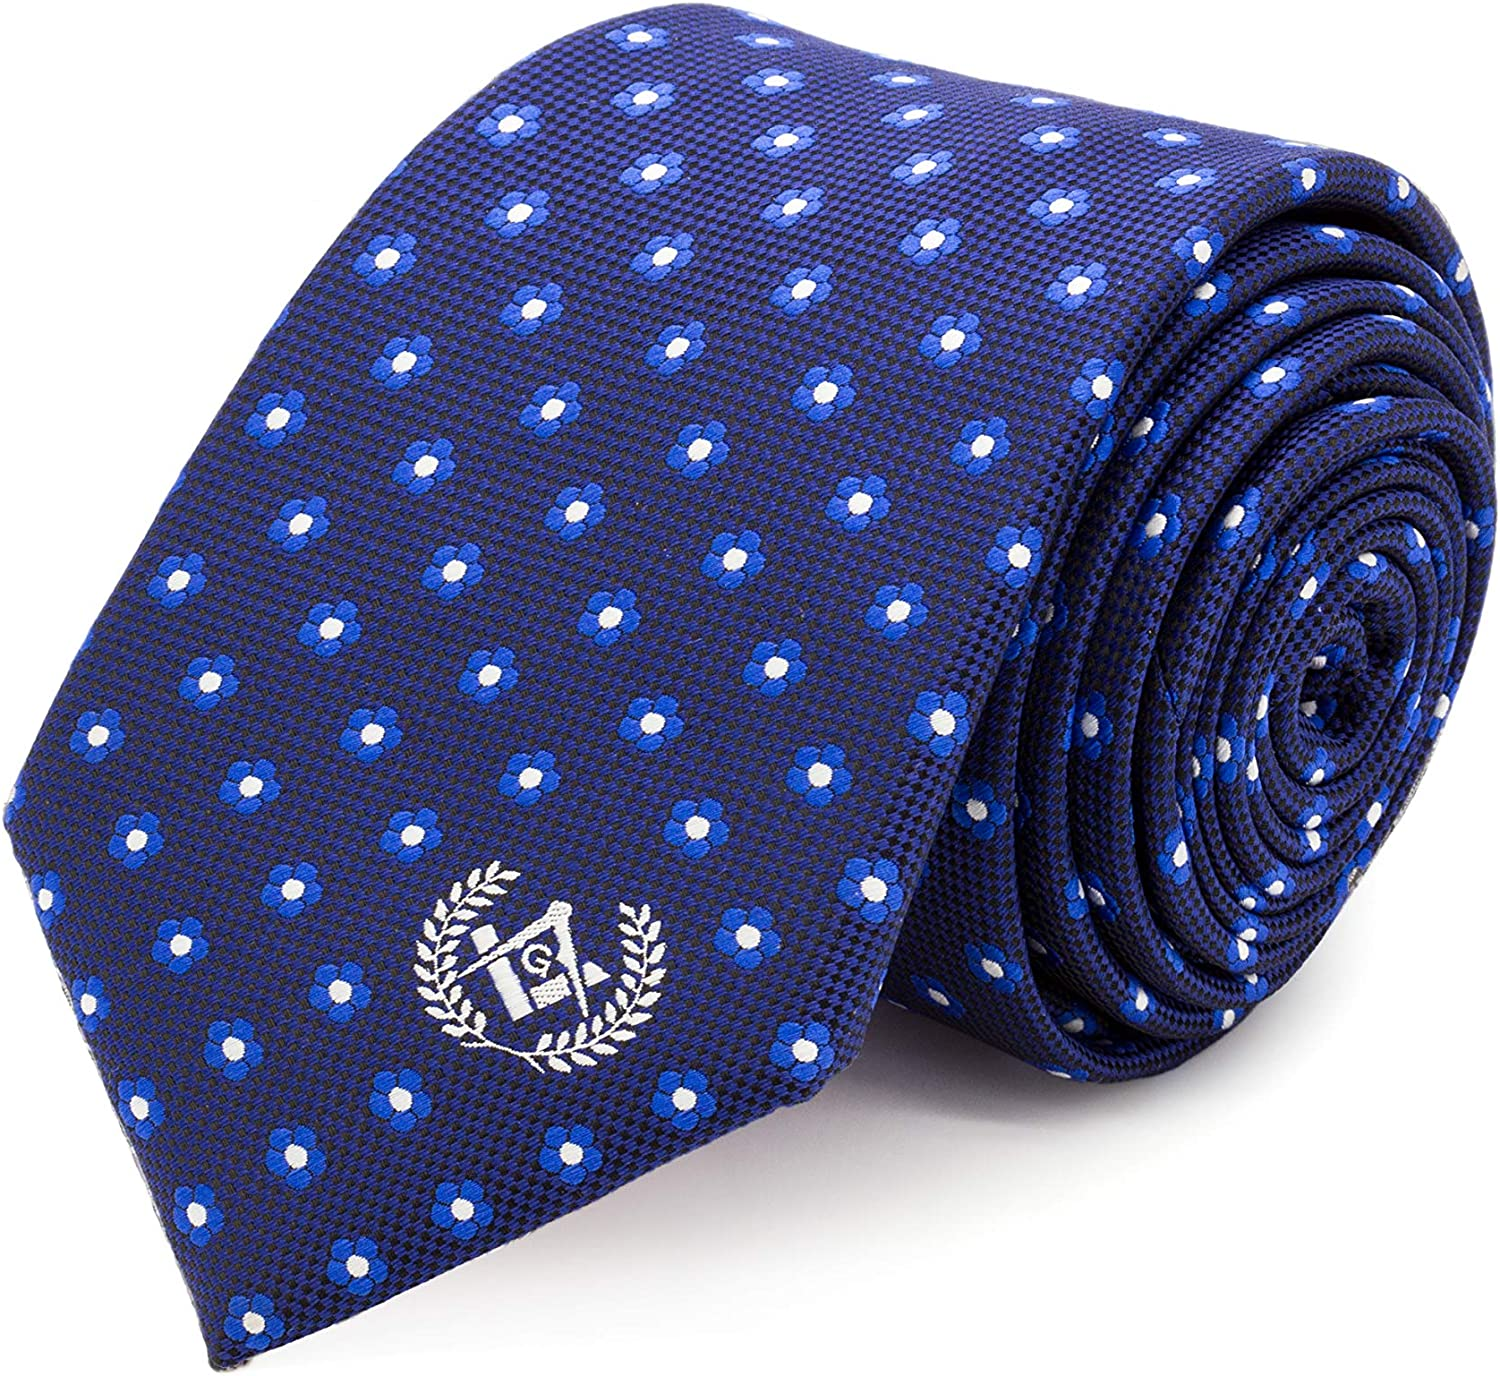 Forget Me Not Necktie Masonic Beauty products 2021new shipping free shipping Blue Revival by